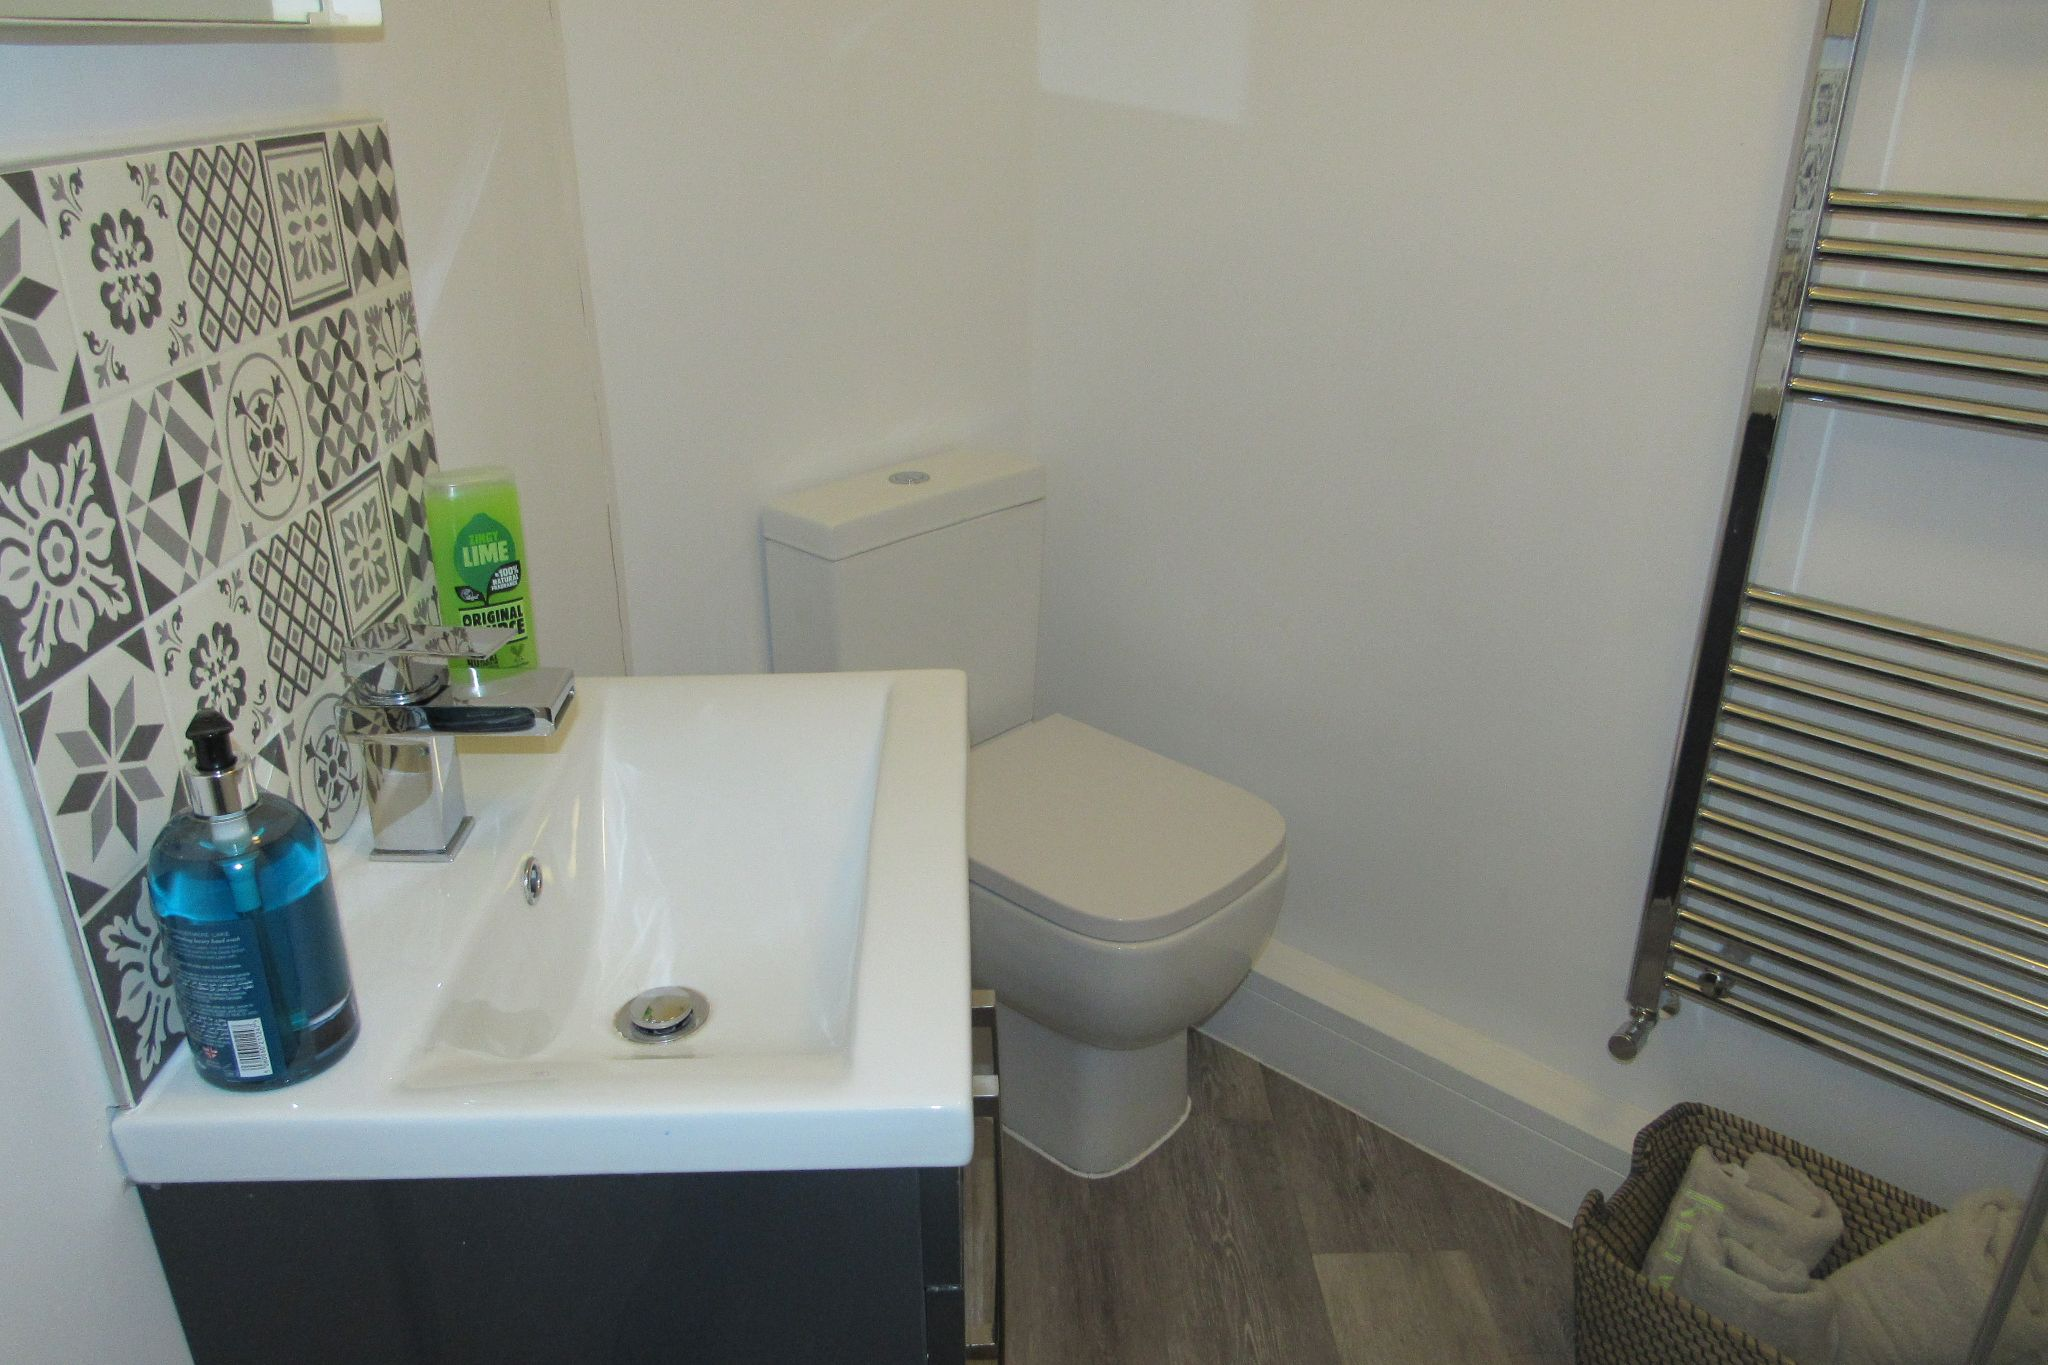 4 bedroom end terraced house SSTC in Manchester - Photograph 5.